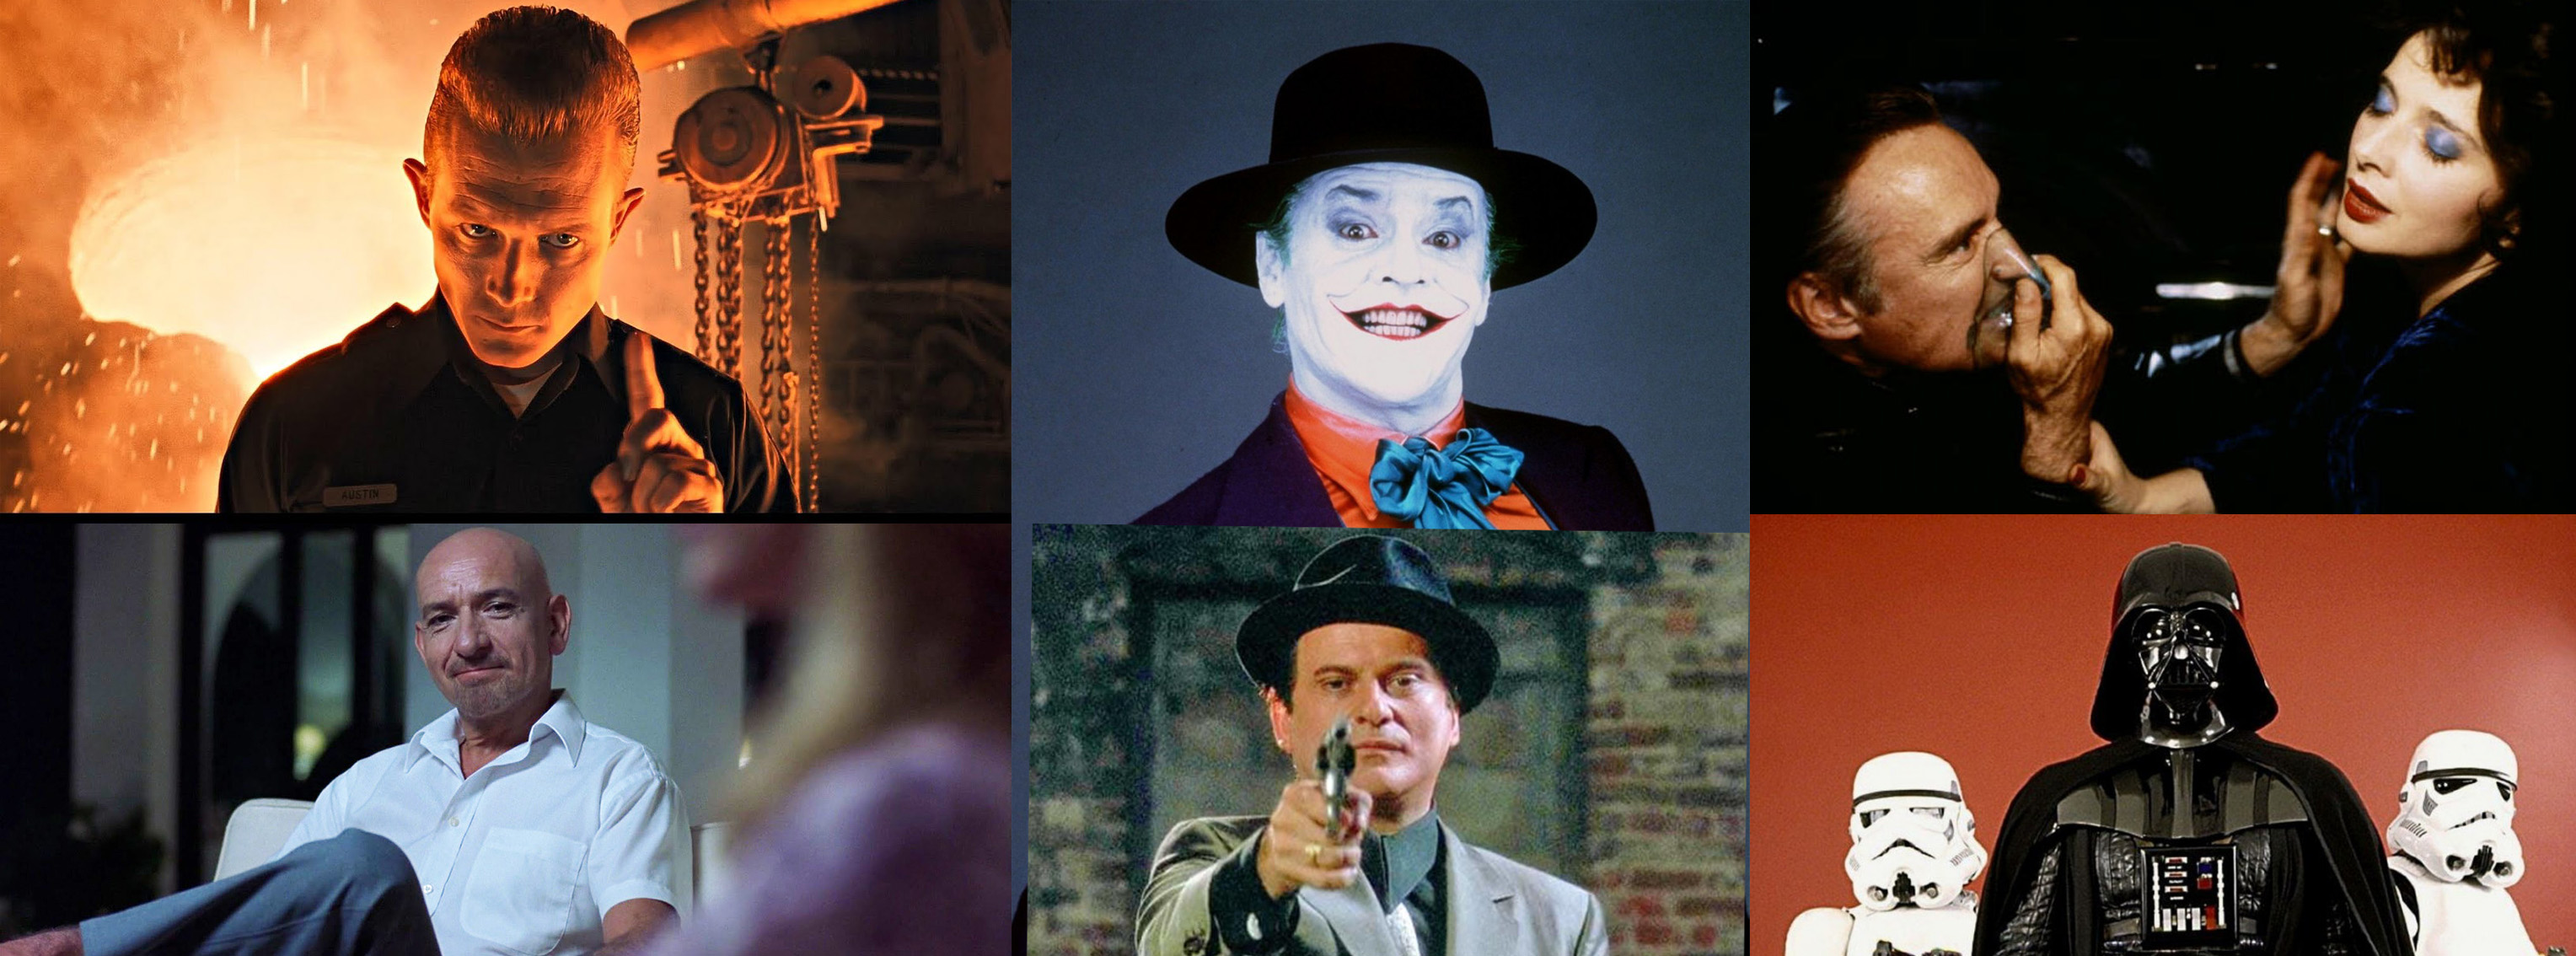 Best movie villains: 15 greatest movie villains of all time